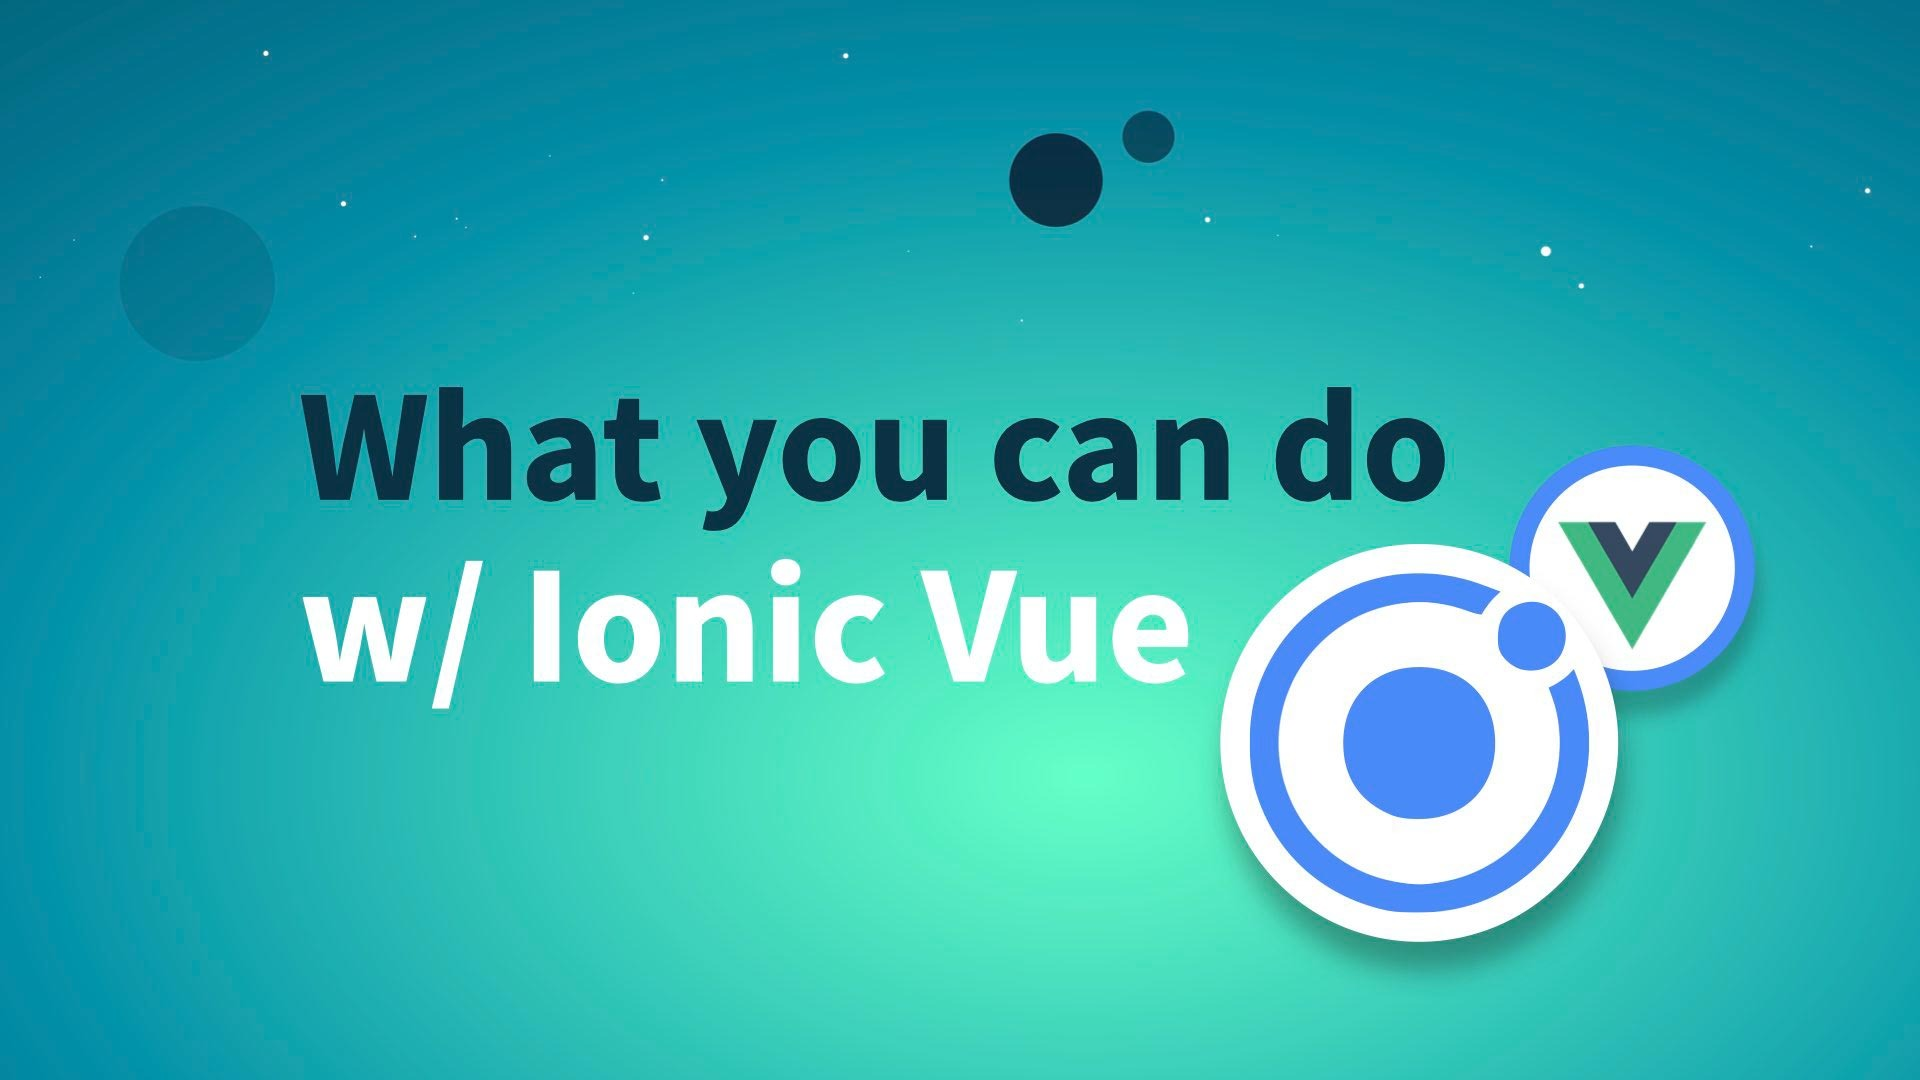 What you can do with Ionic Vue